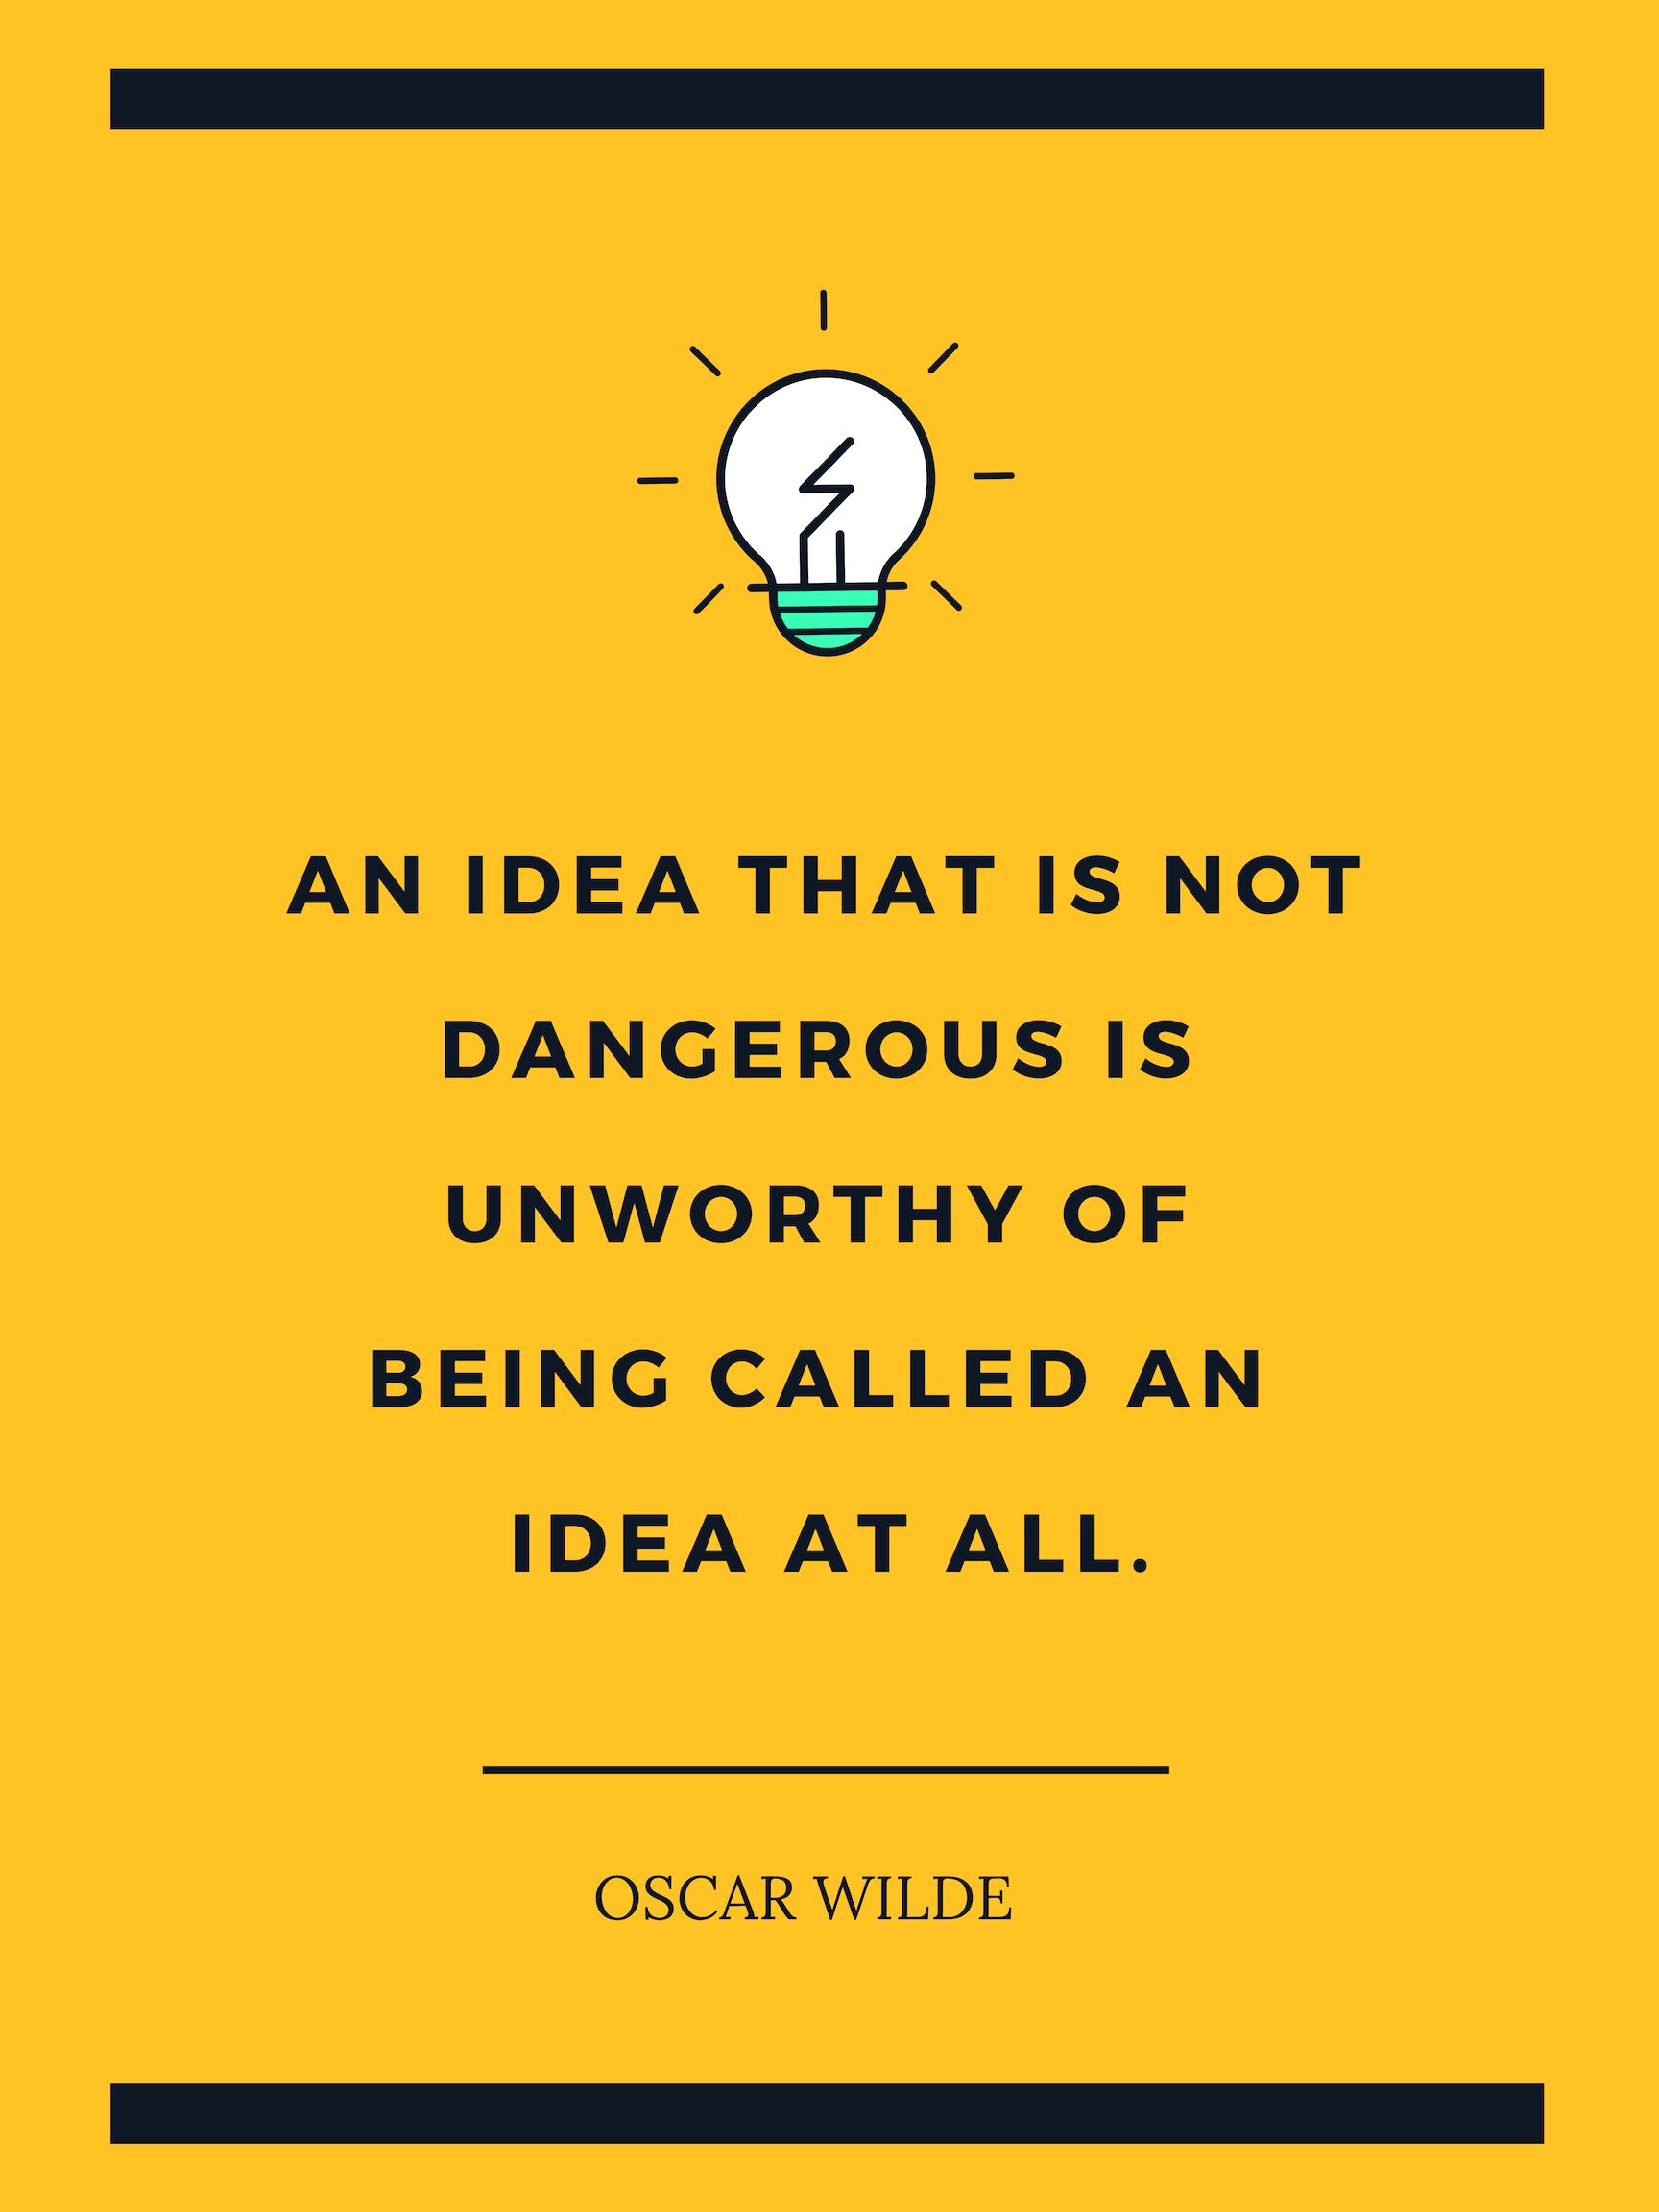 Quote by Oscar Wilde about how new ideas naturally always feel dangerous